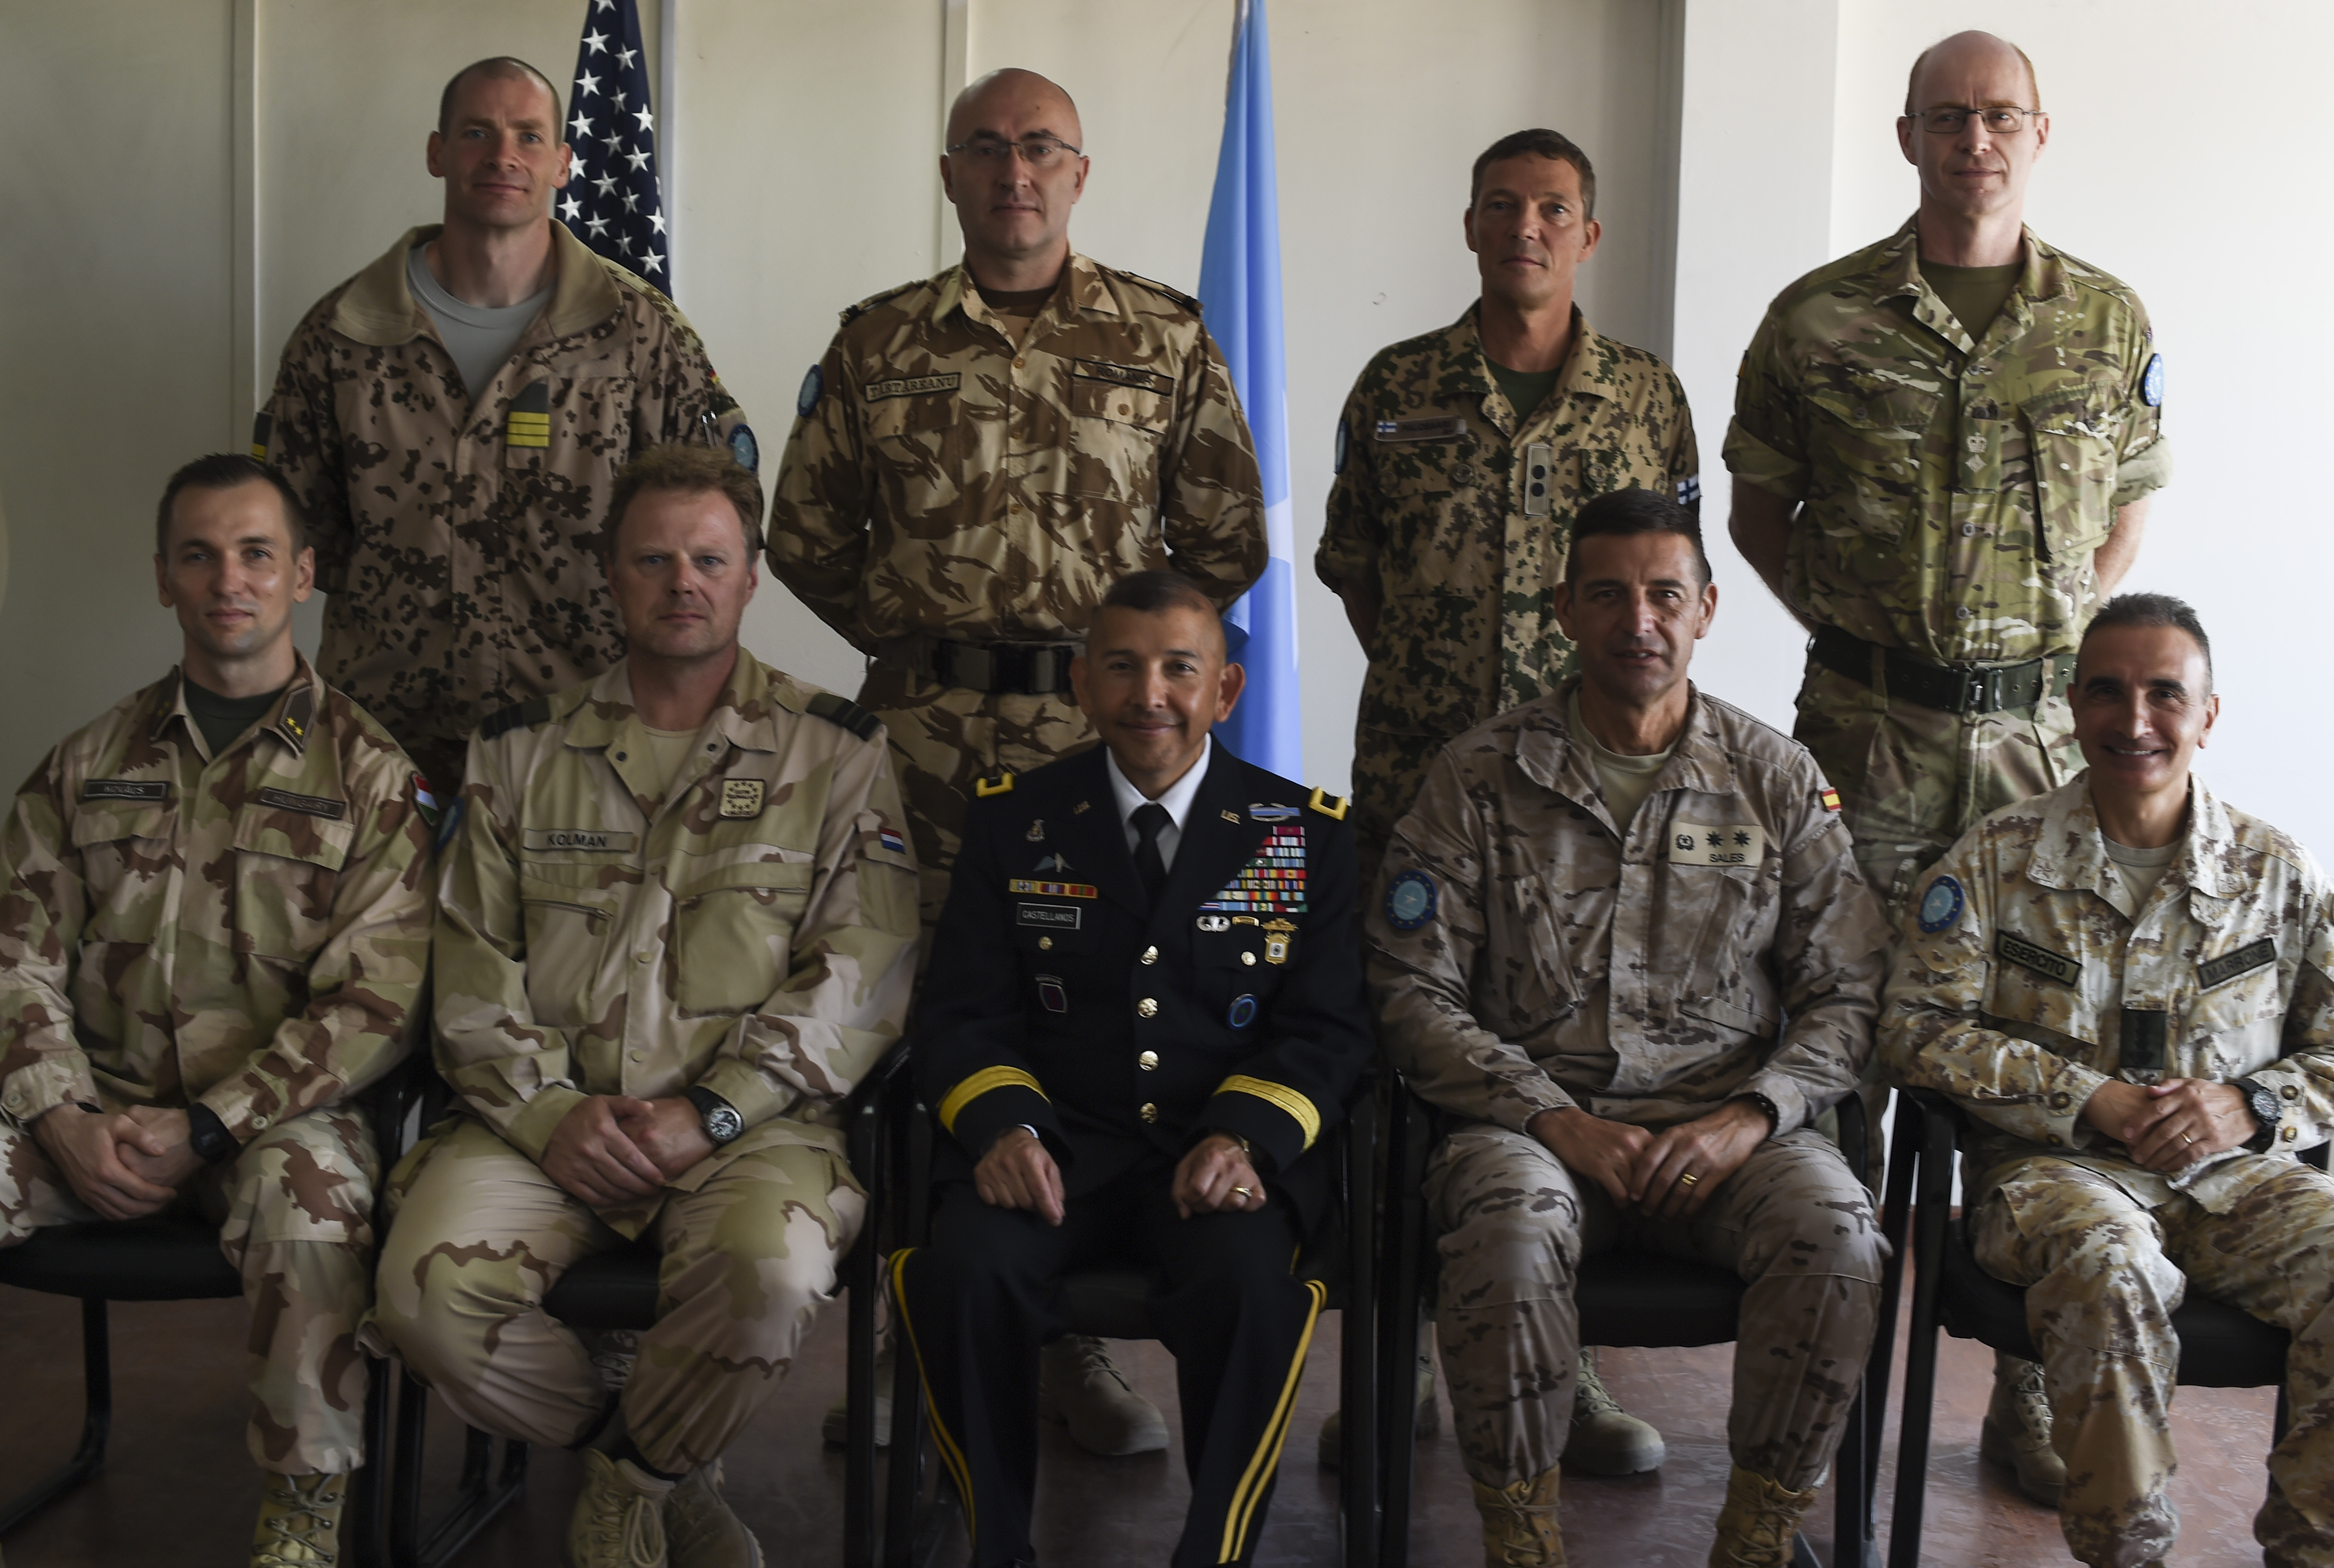 U.S. Army Brig. Gen. Miguel Castellanos (bottom, center), Combined Joint Task Force-Horn of Africa deputy commanding general in Somalia and Mogadishu Coordination Cell director, is seated with international military partners at the MCC, June 4, 2017. Castellanos works from the Mogadishu International Airport compound with his team to support combined military efforts to achieve U.S. Africa Command's top priority of defeating Al-Shabaab in Somalia and successfully transitioning security functions to Somali National Security Forces. (U.S. Air Force photo by Staff Sgt. Eboni Prince)